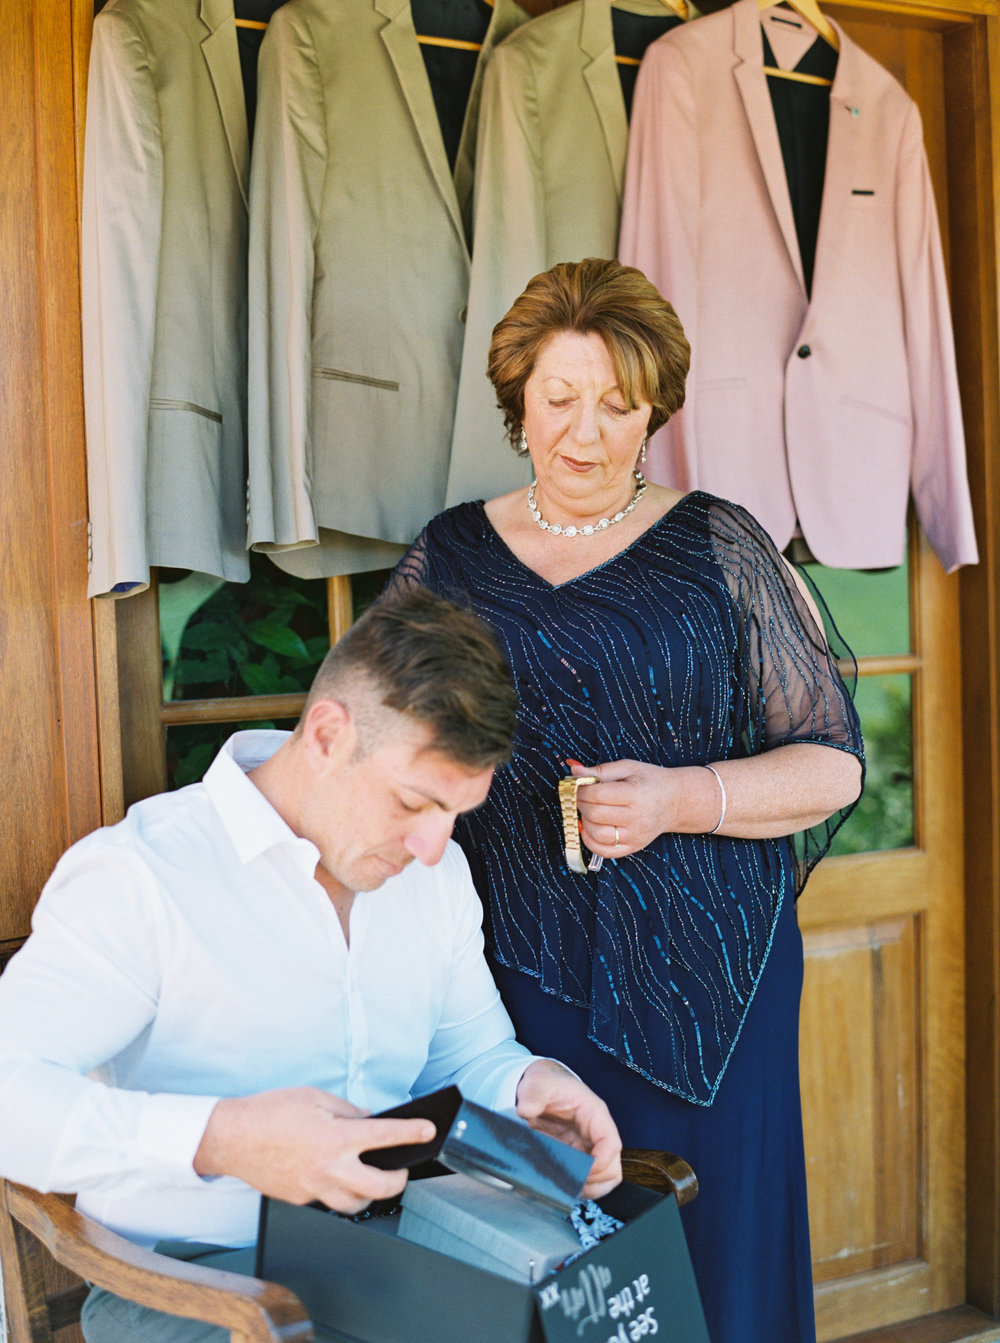 00076- Fine Art Film Mudgee Hunter Valley NSW Wedding Photographer Sheri McMahon.jpg